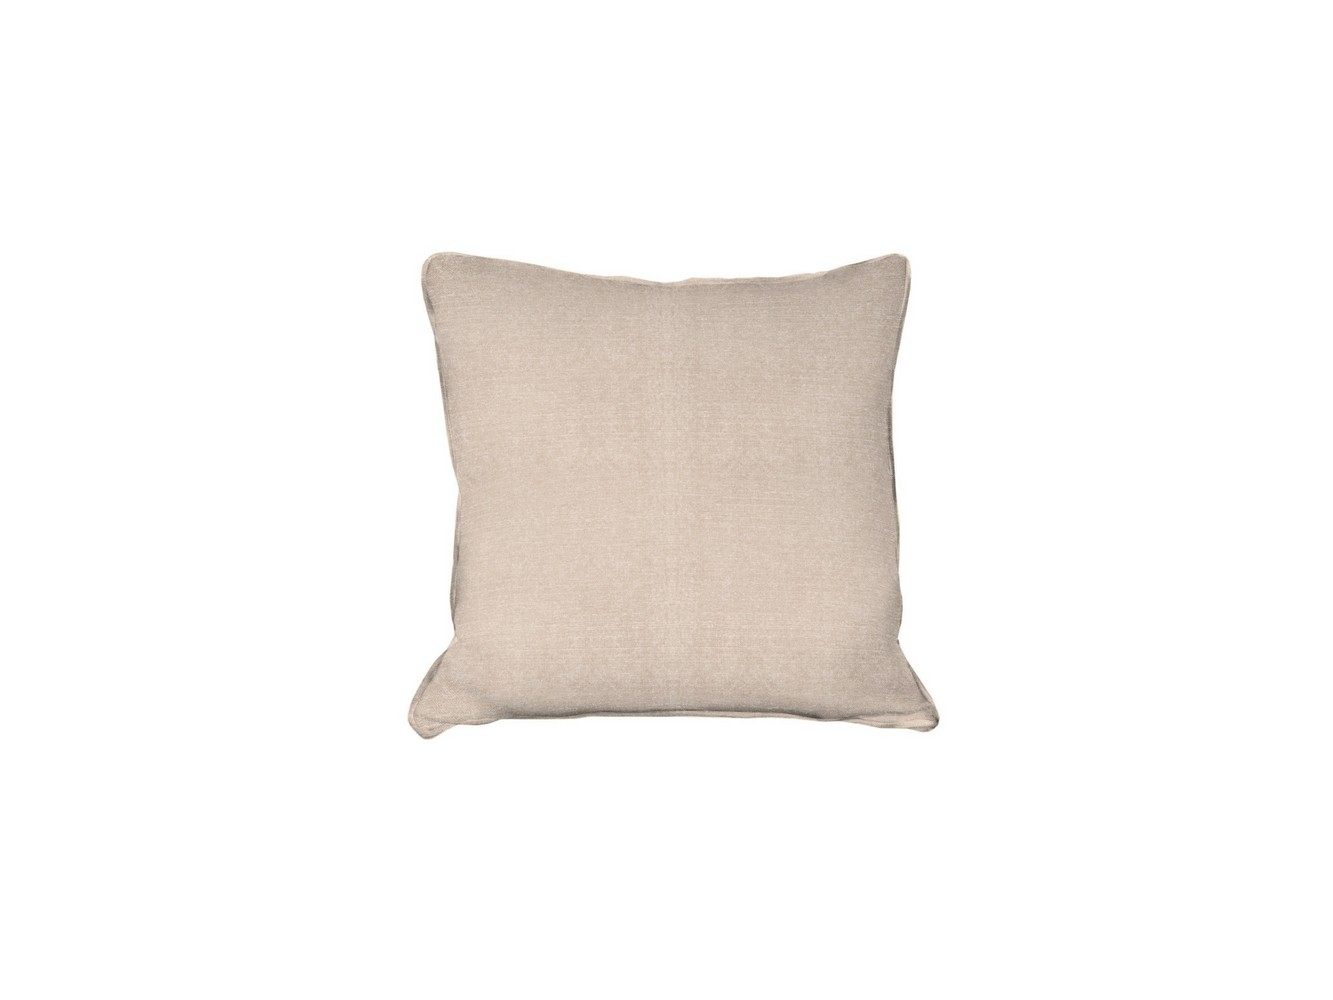 Extra Scatter Cushions - Fabric Dusty Rose